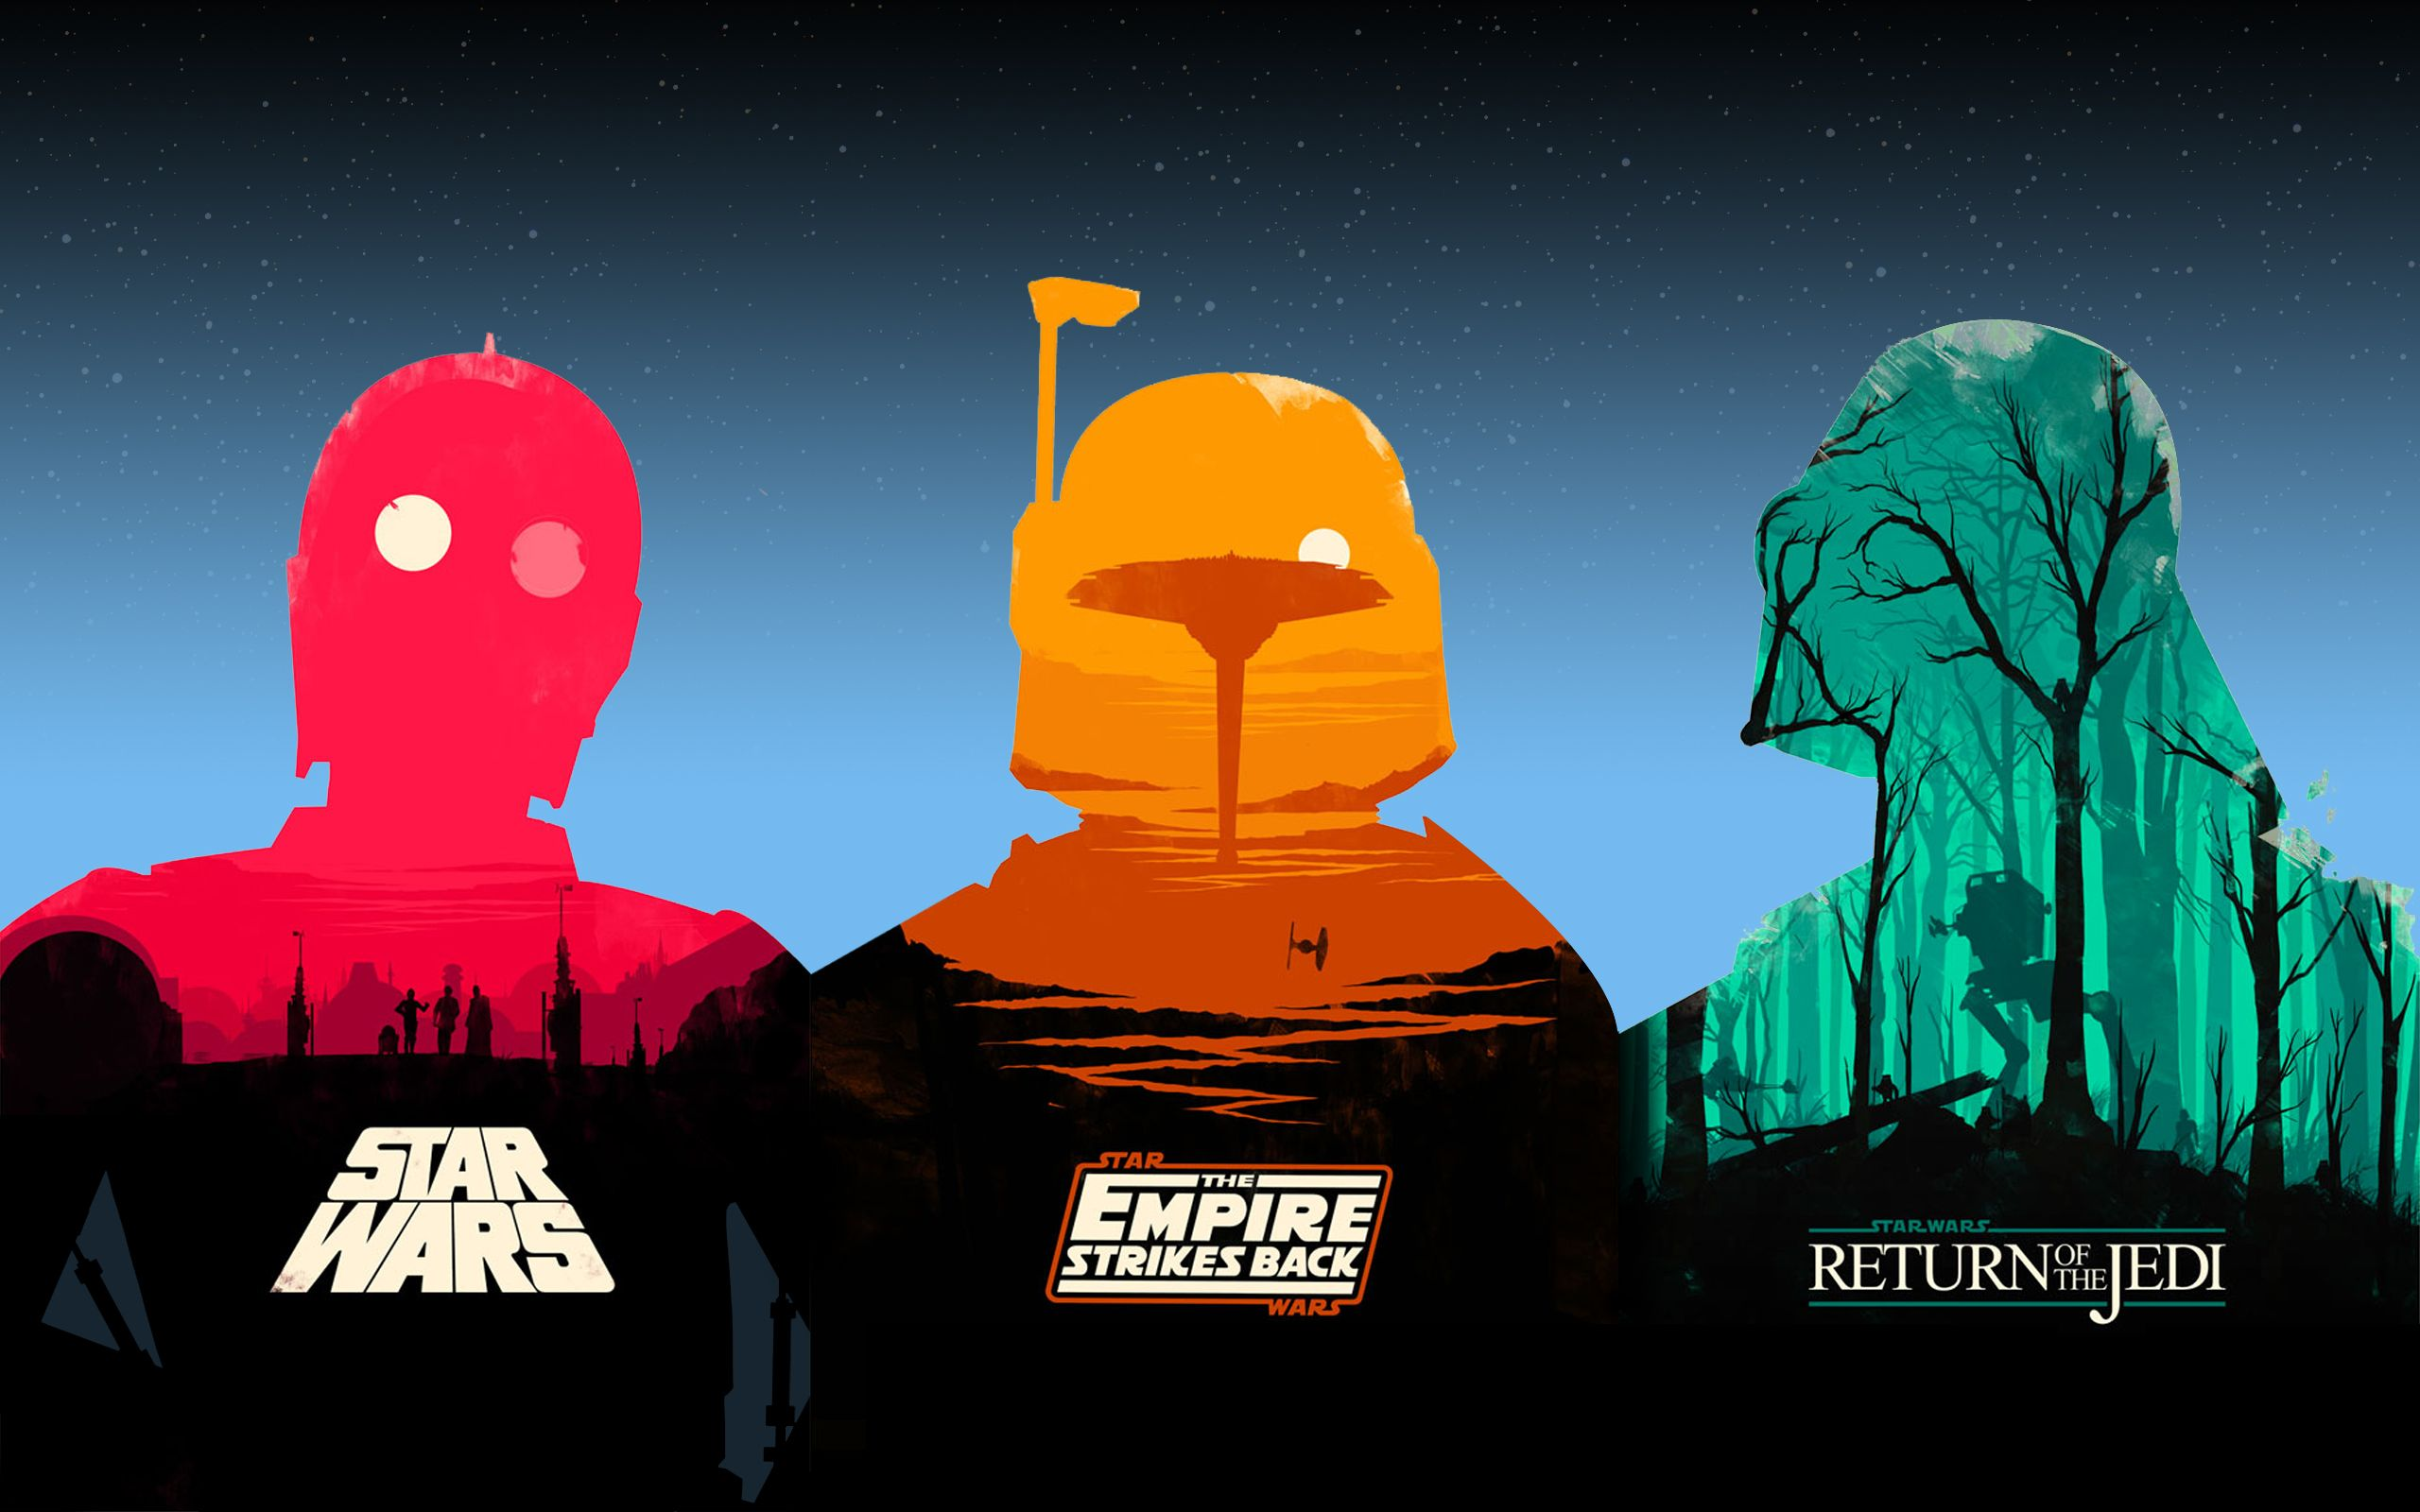 Epic Star Wars Backgrounds Posted By Samantha Johnson